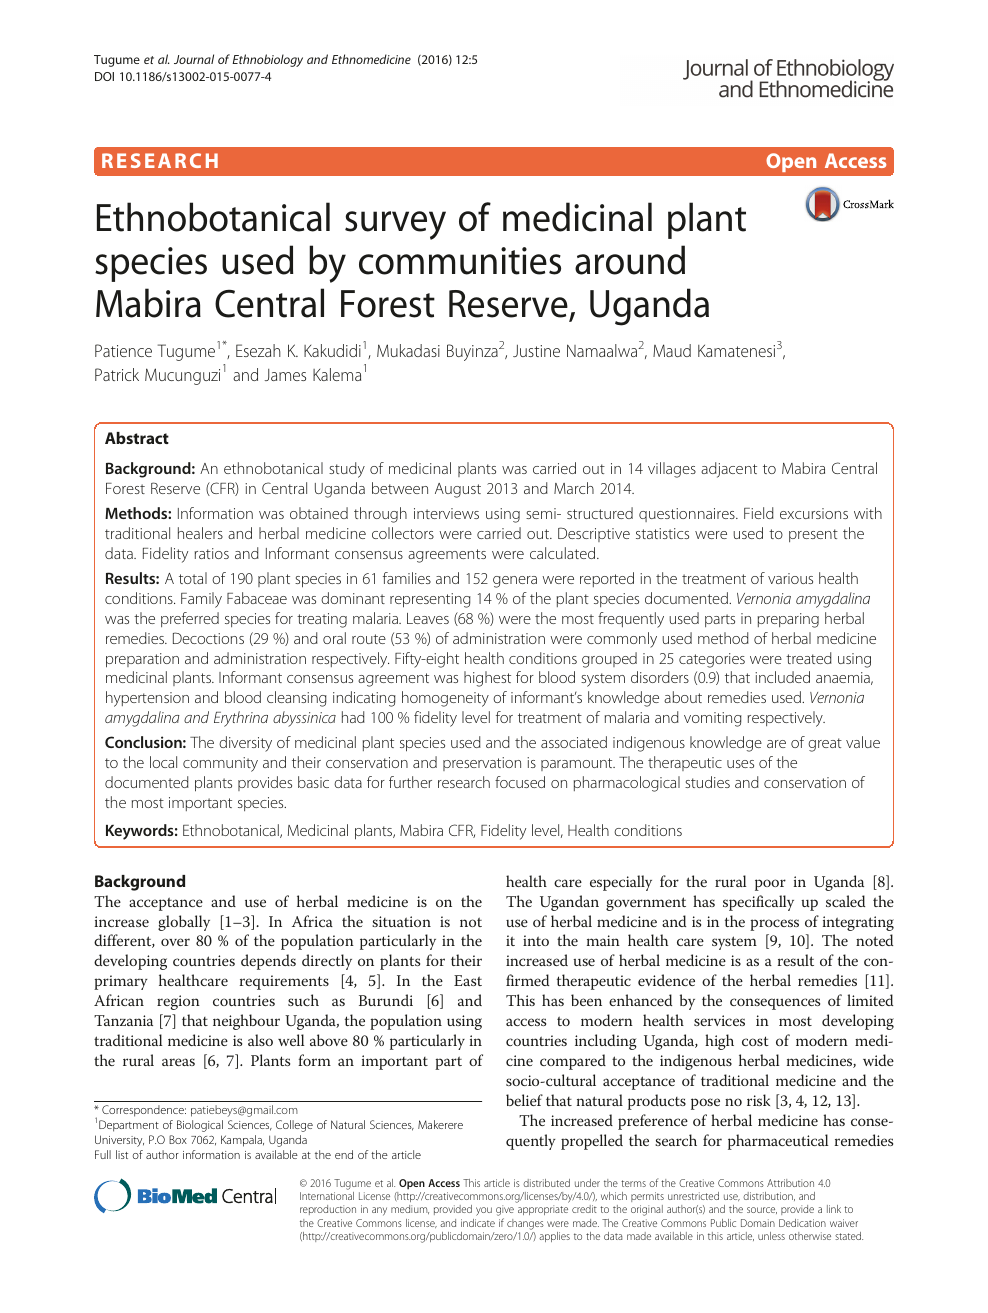 Ethnobotanical survey of medicinal plant species used by